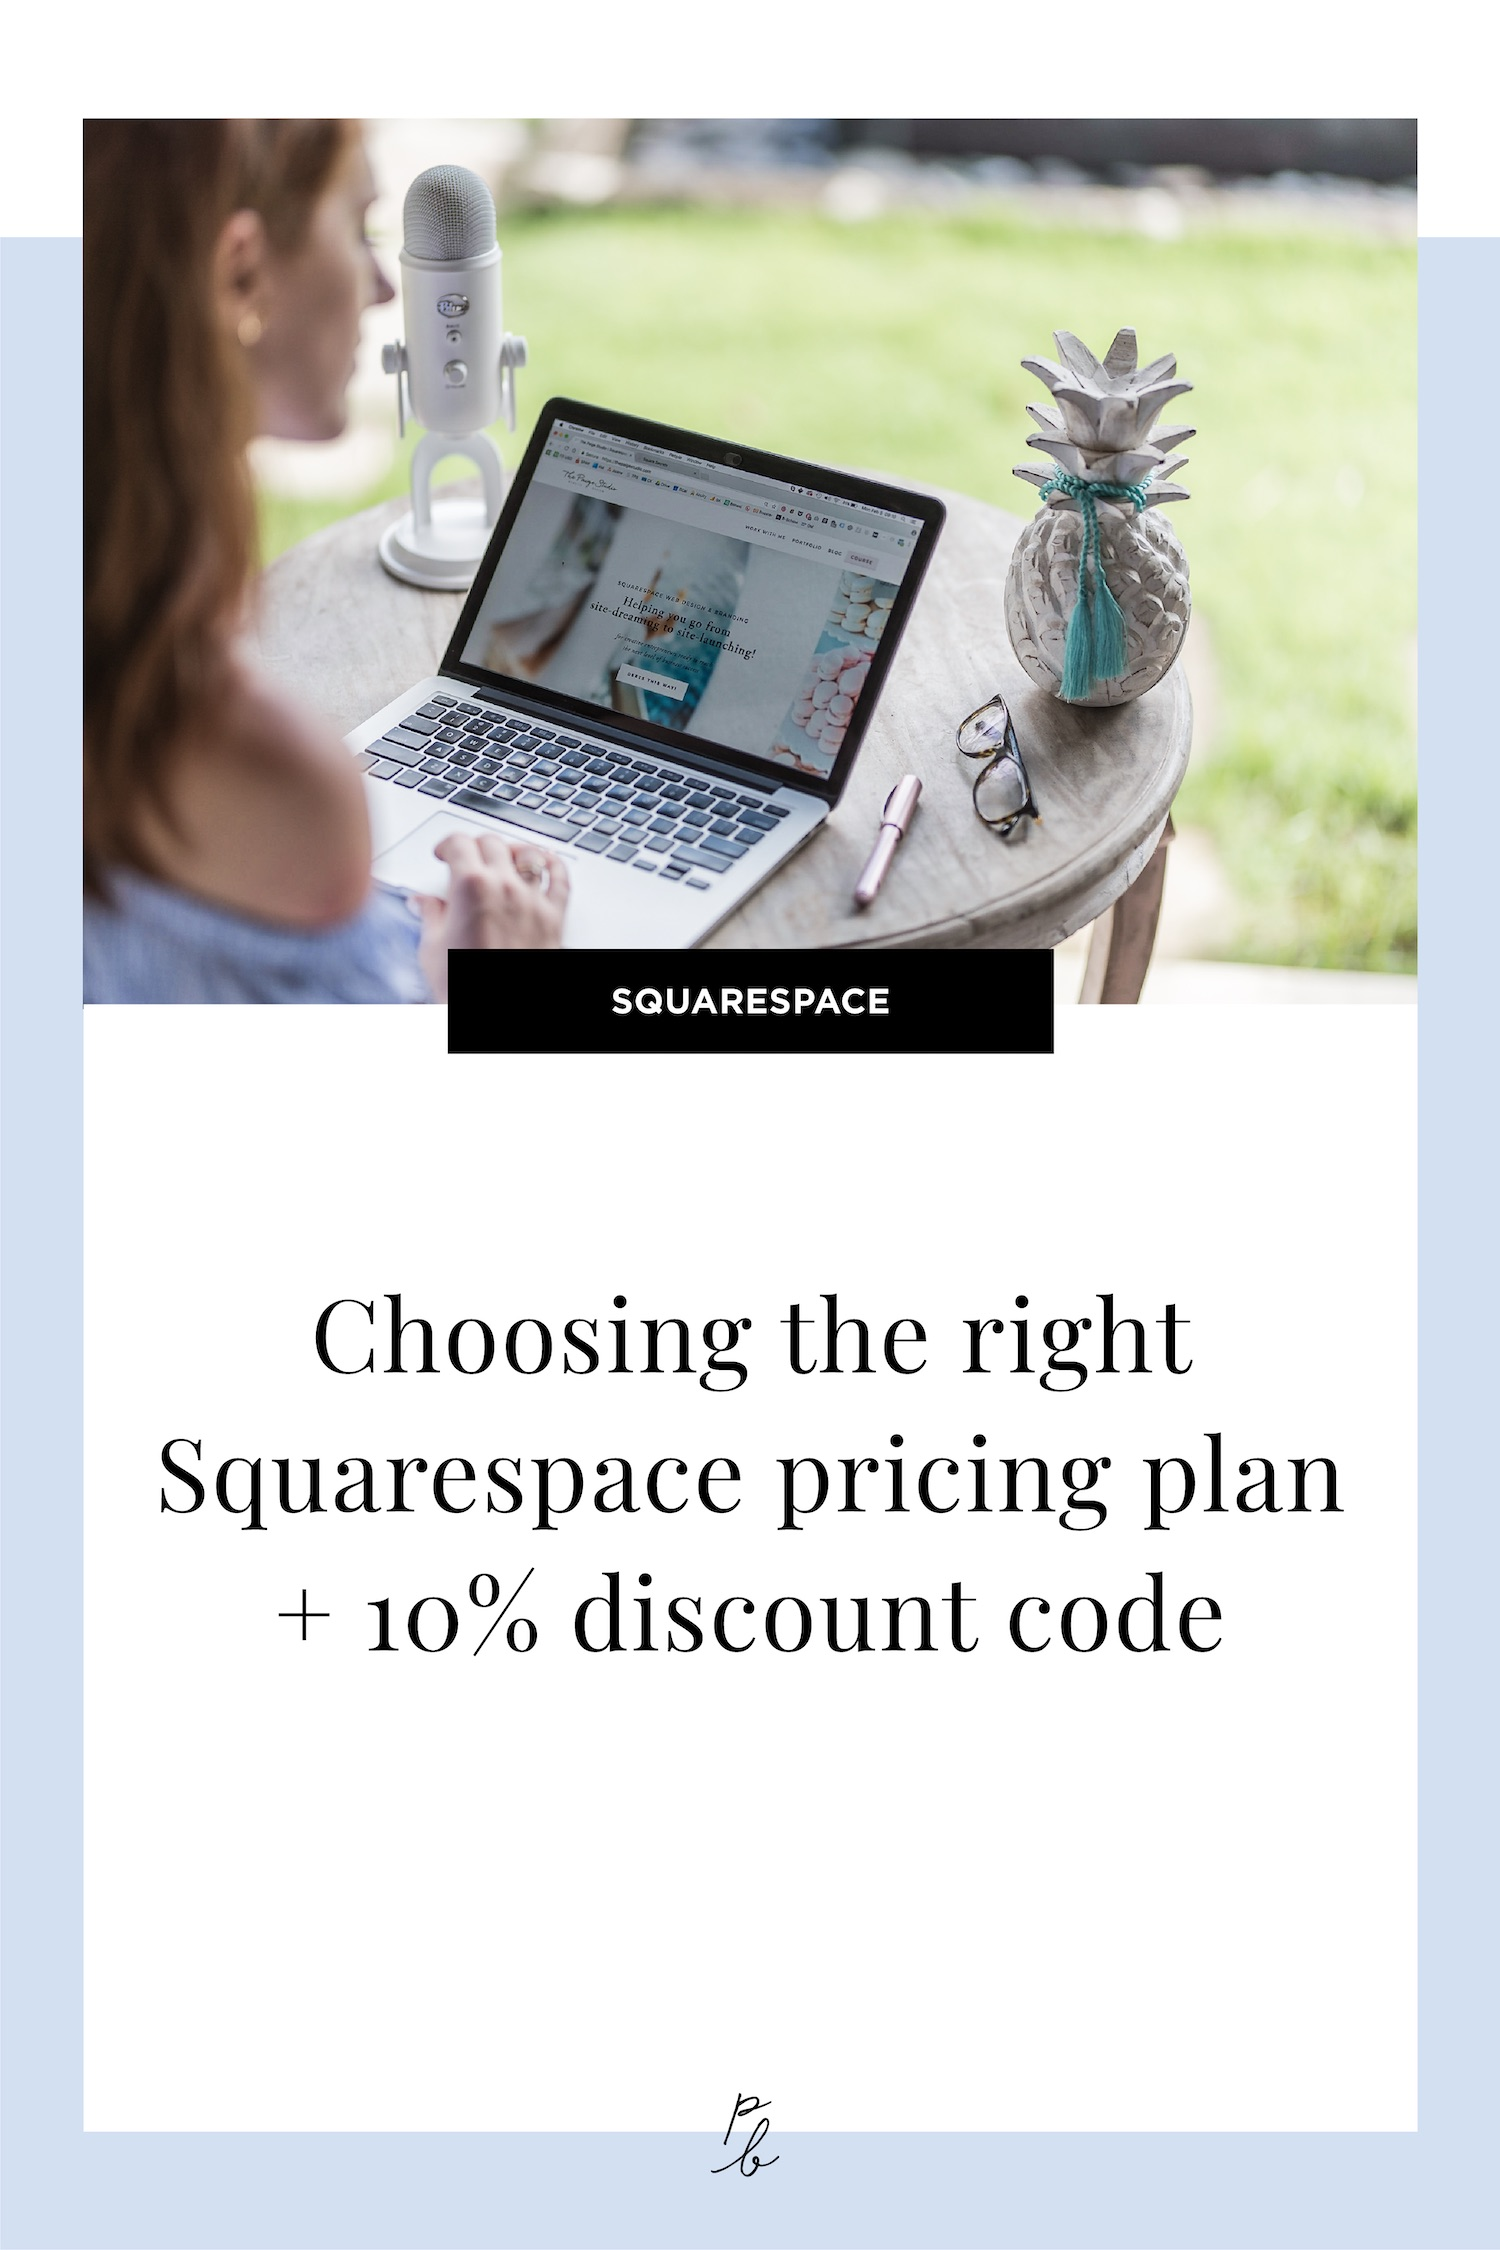 Choosing the right Squarespace pricing plan + 15% discount code.jpg